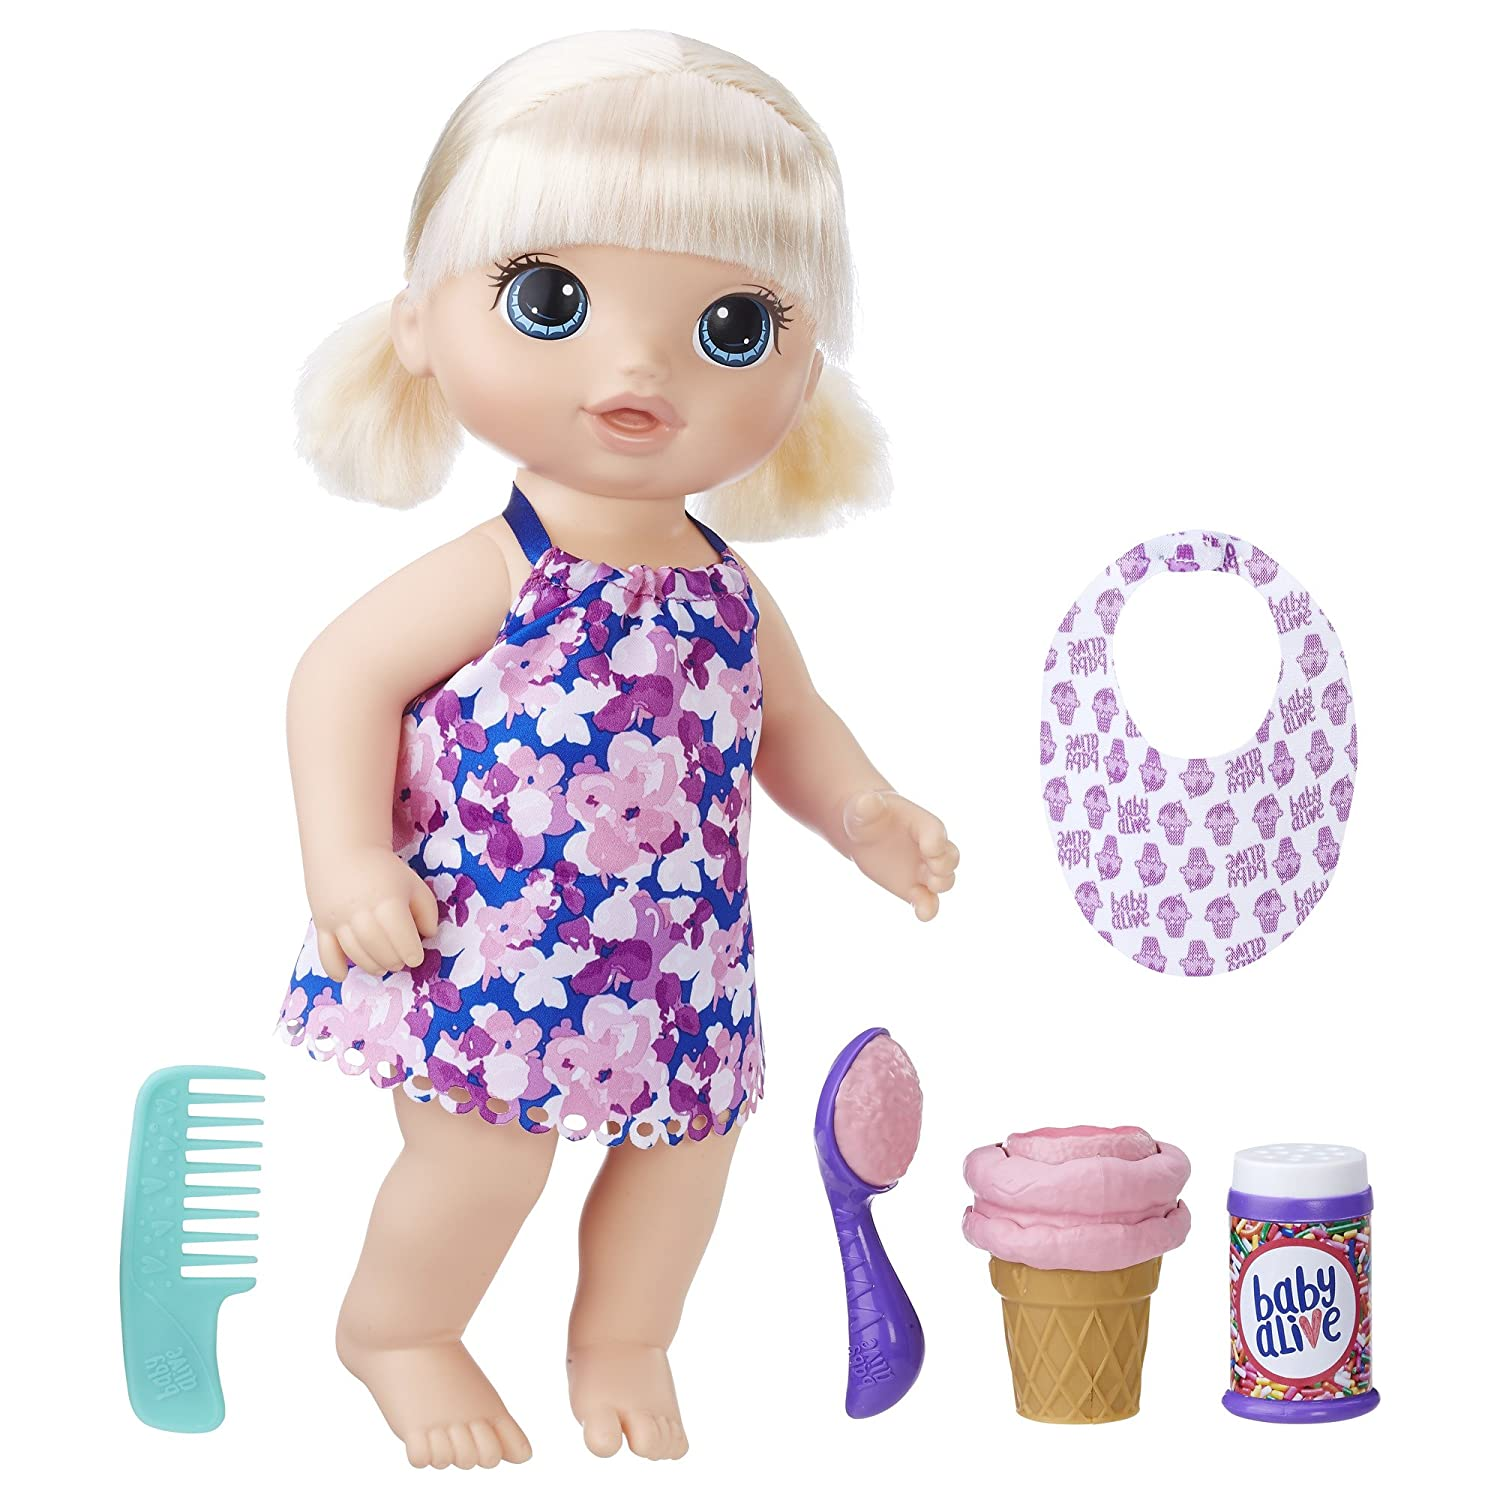 Baby Alive Magical Scoops Baby Blonde Amazon Toys & Games